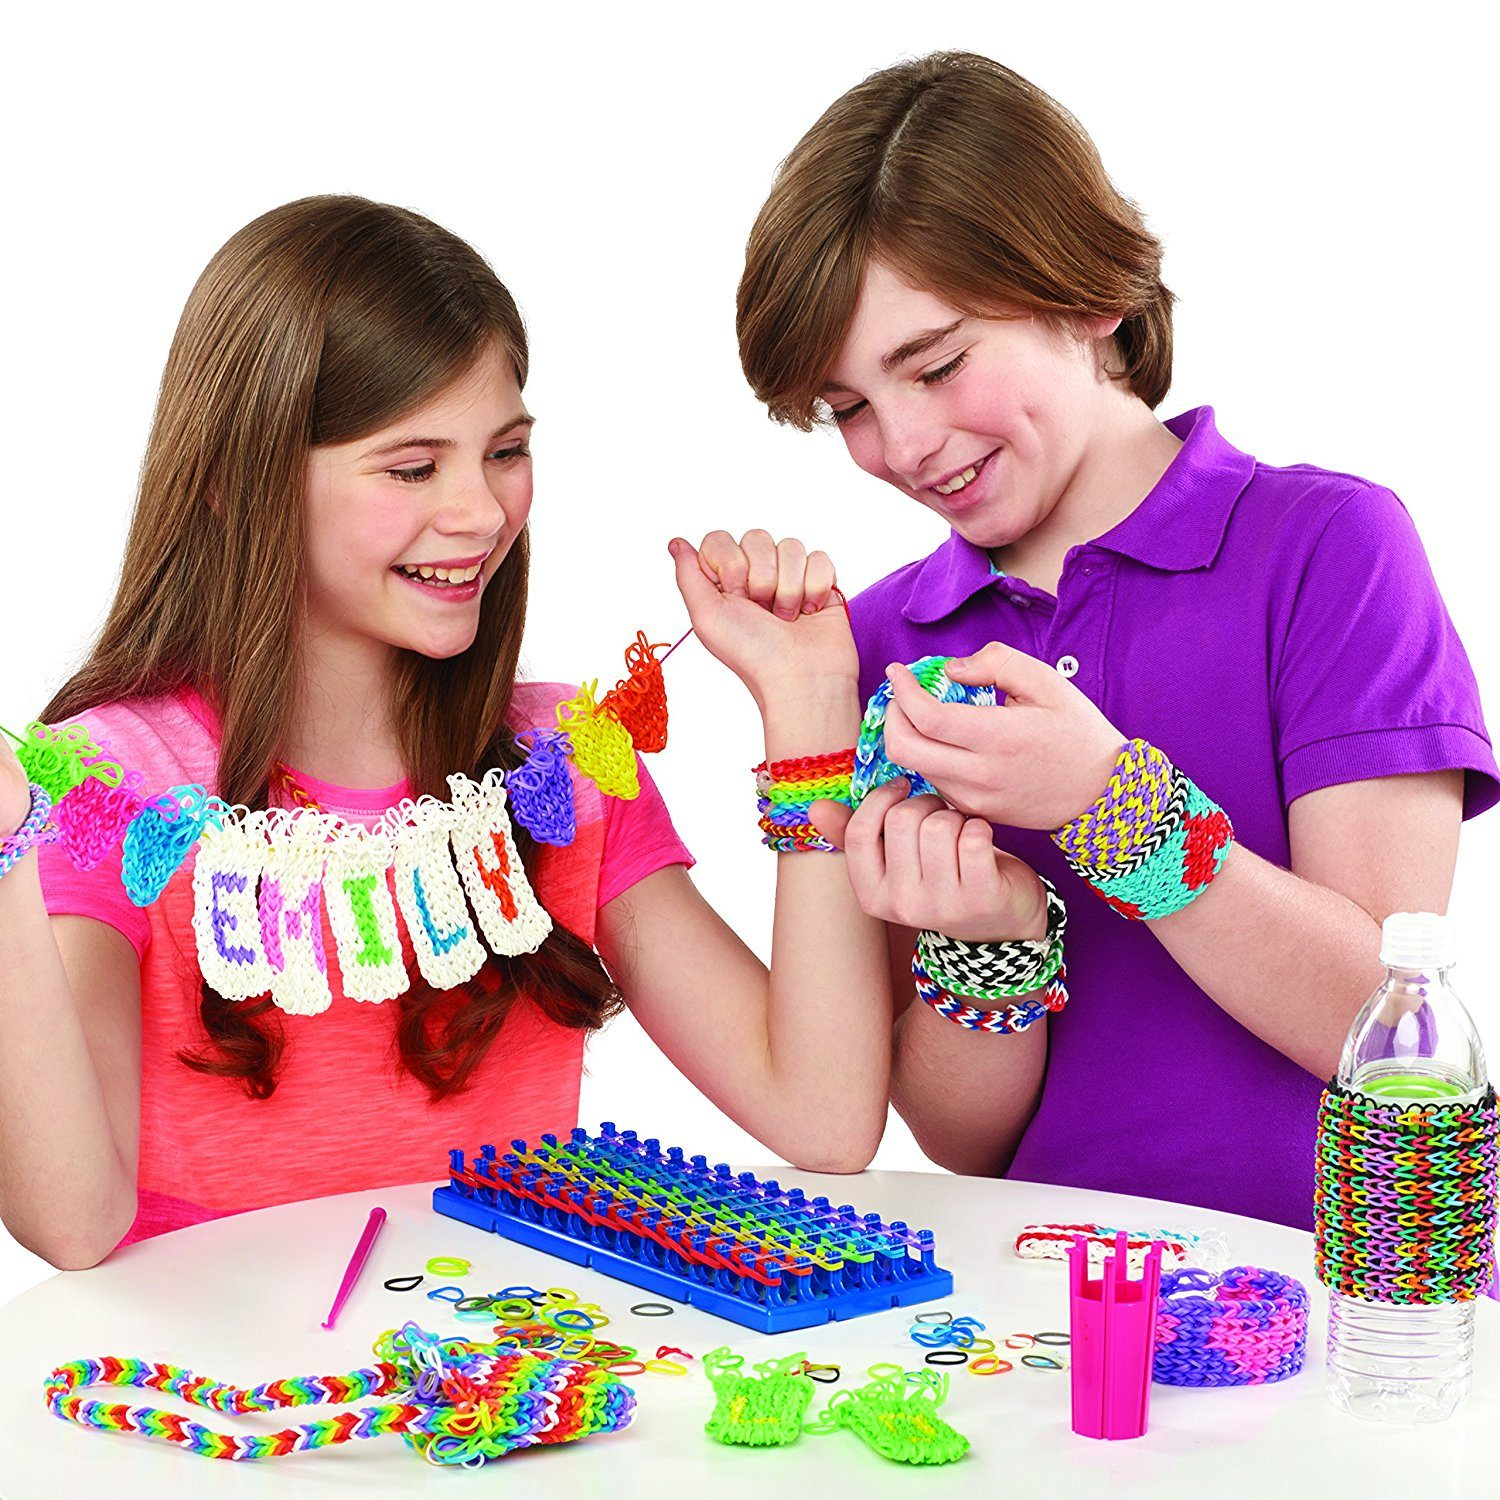 Cra-Z-Loom Super Set mit 6 Reihen Loom [UK Import]